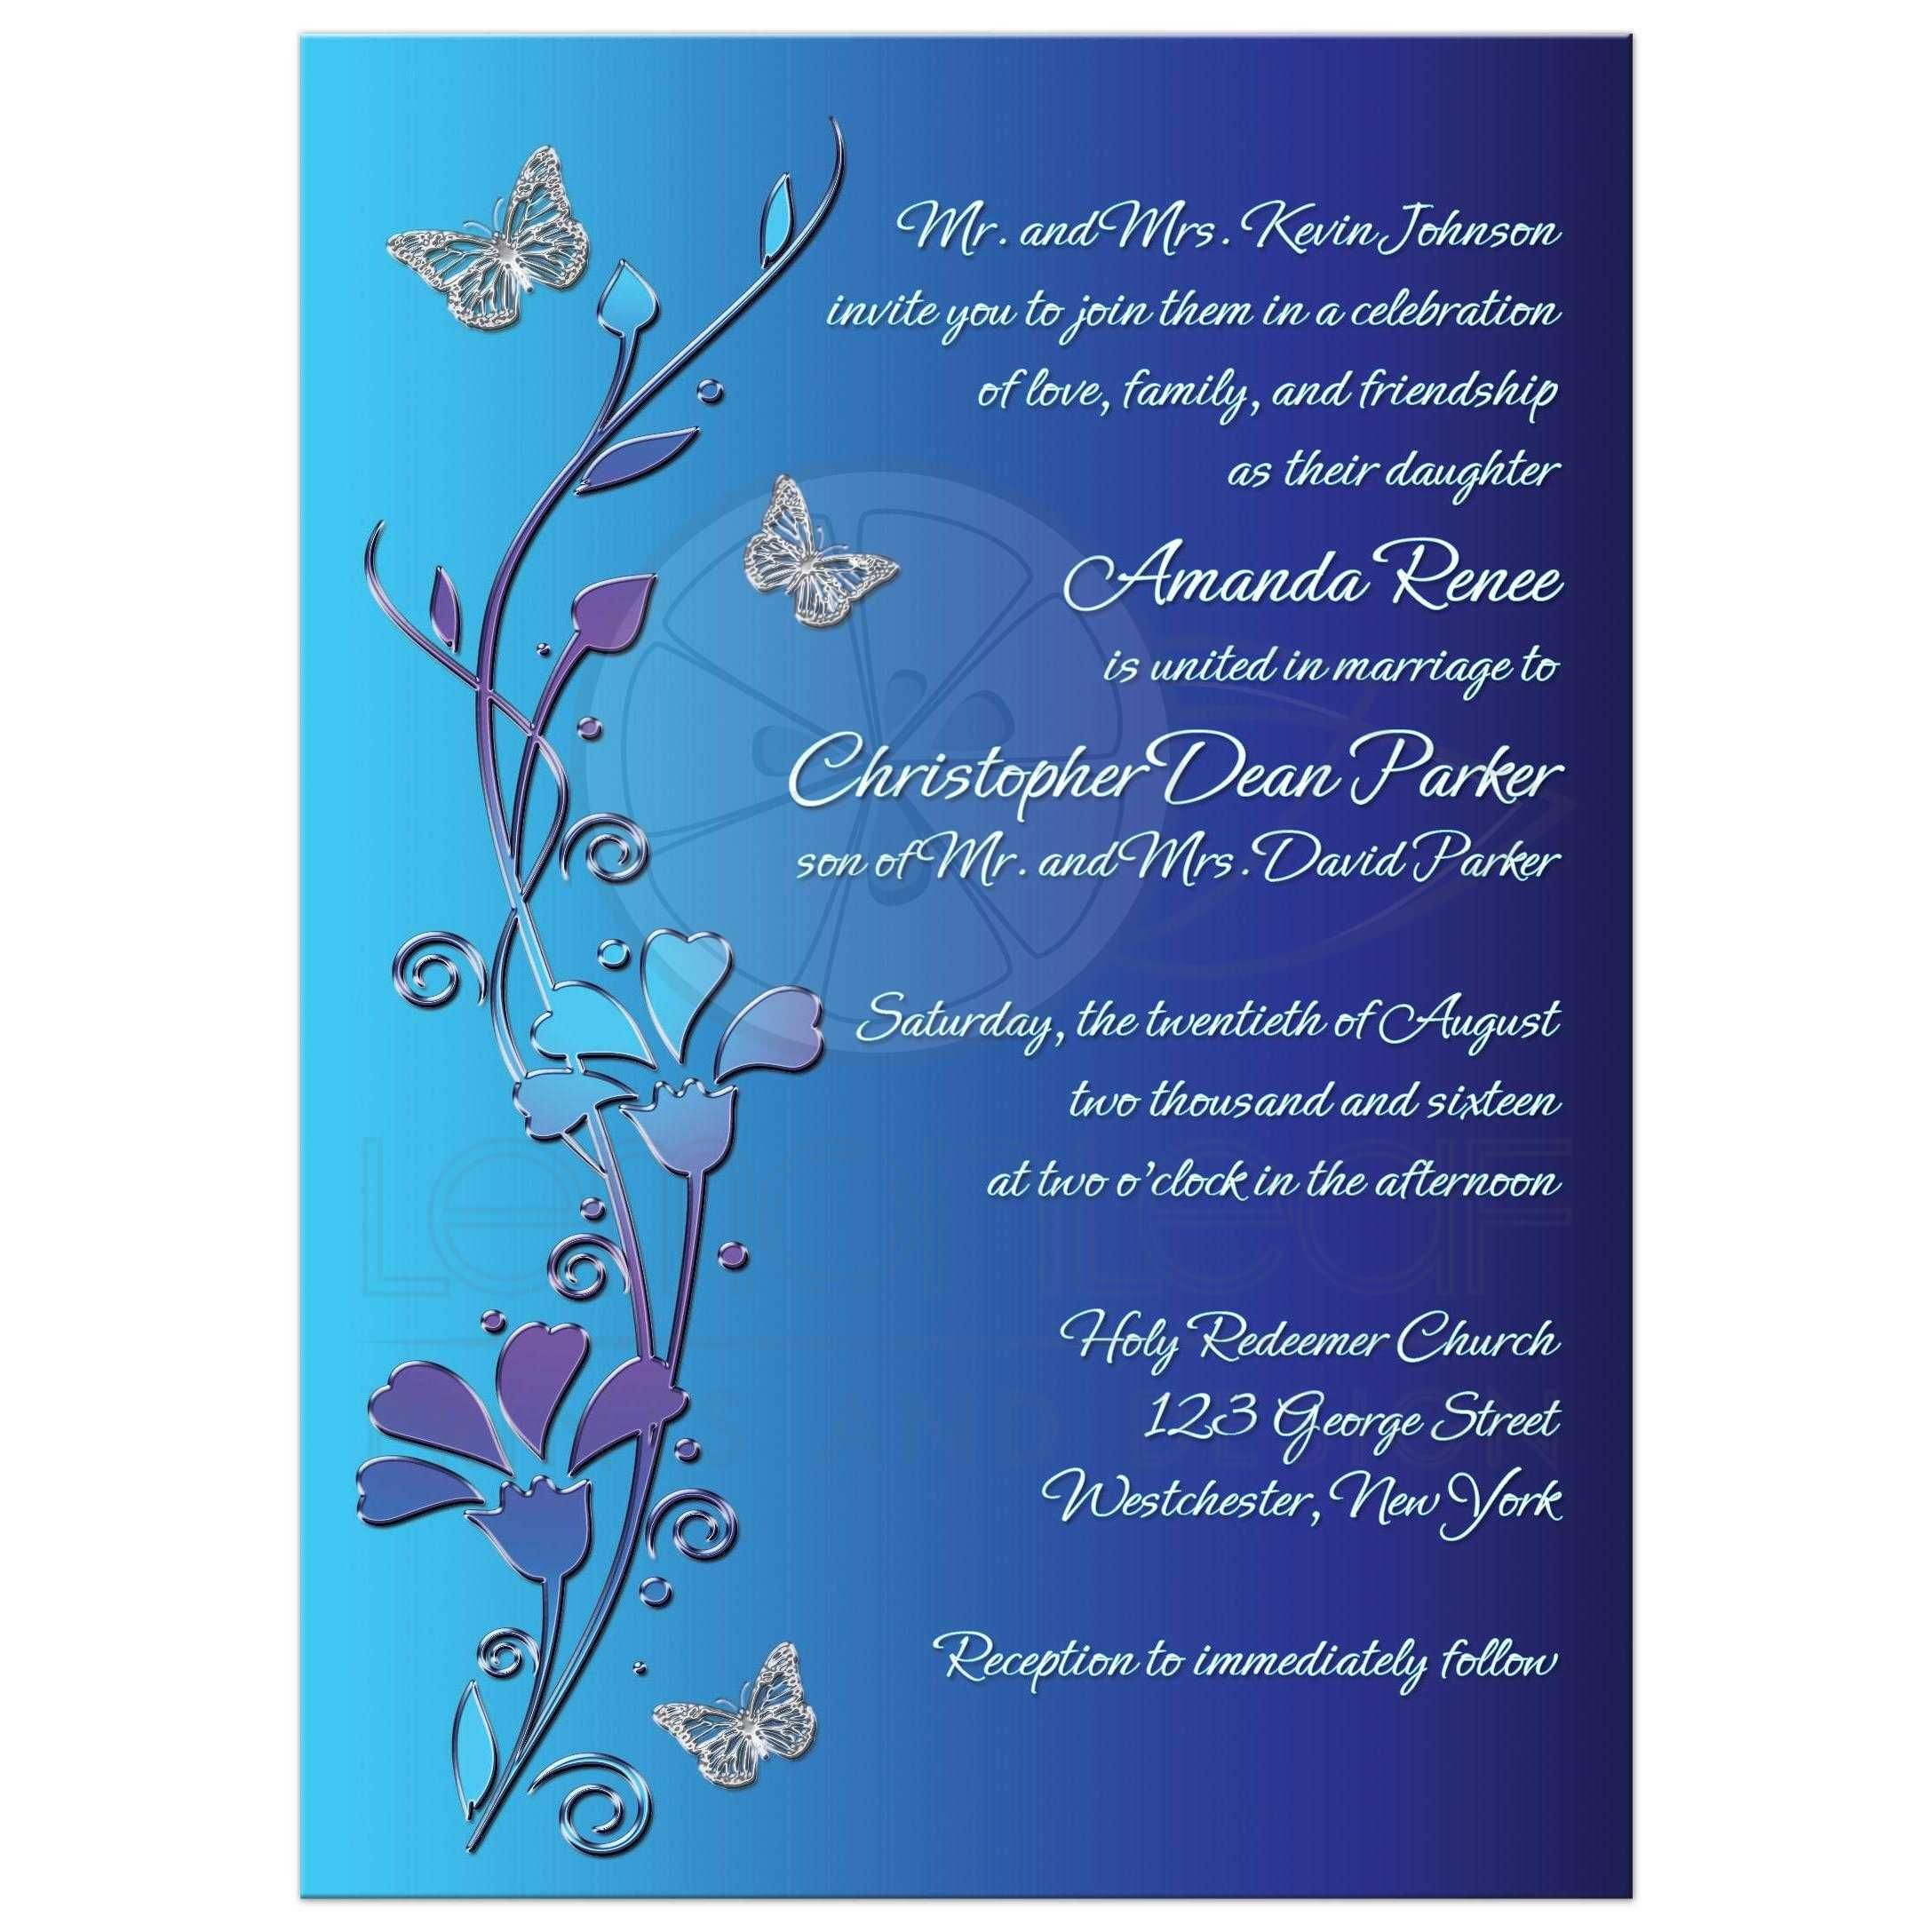 Wedding Invitation Royal Blue Turquoise Mauve Flowers Silver Erflies